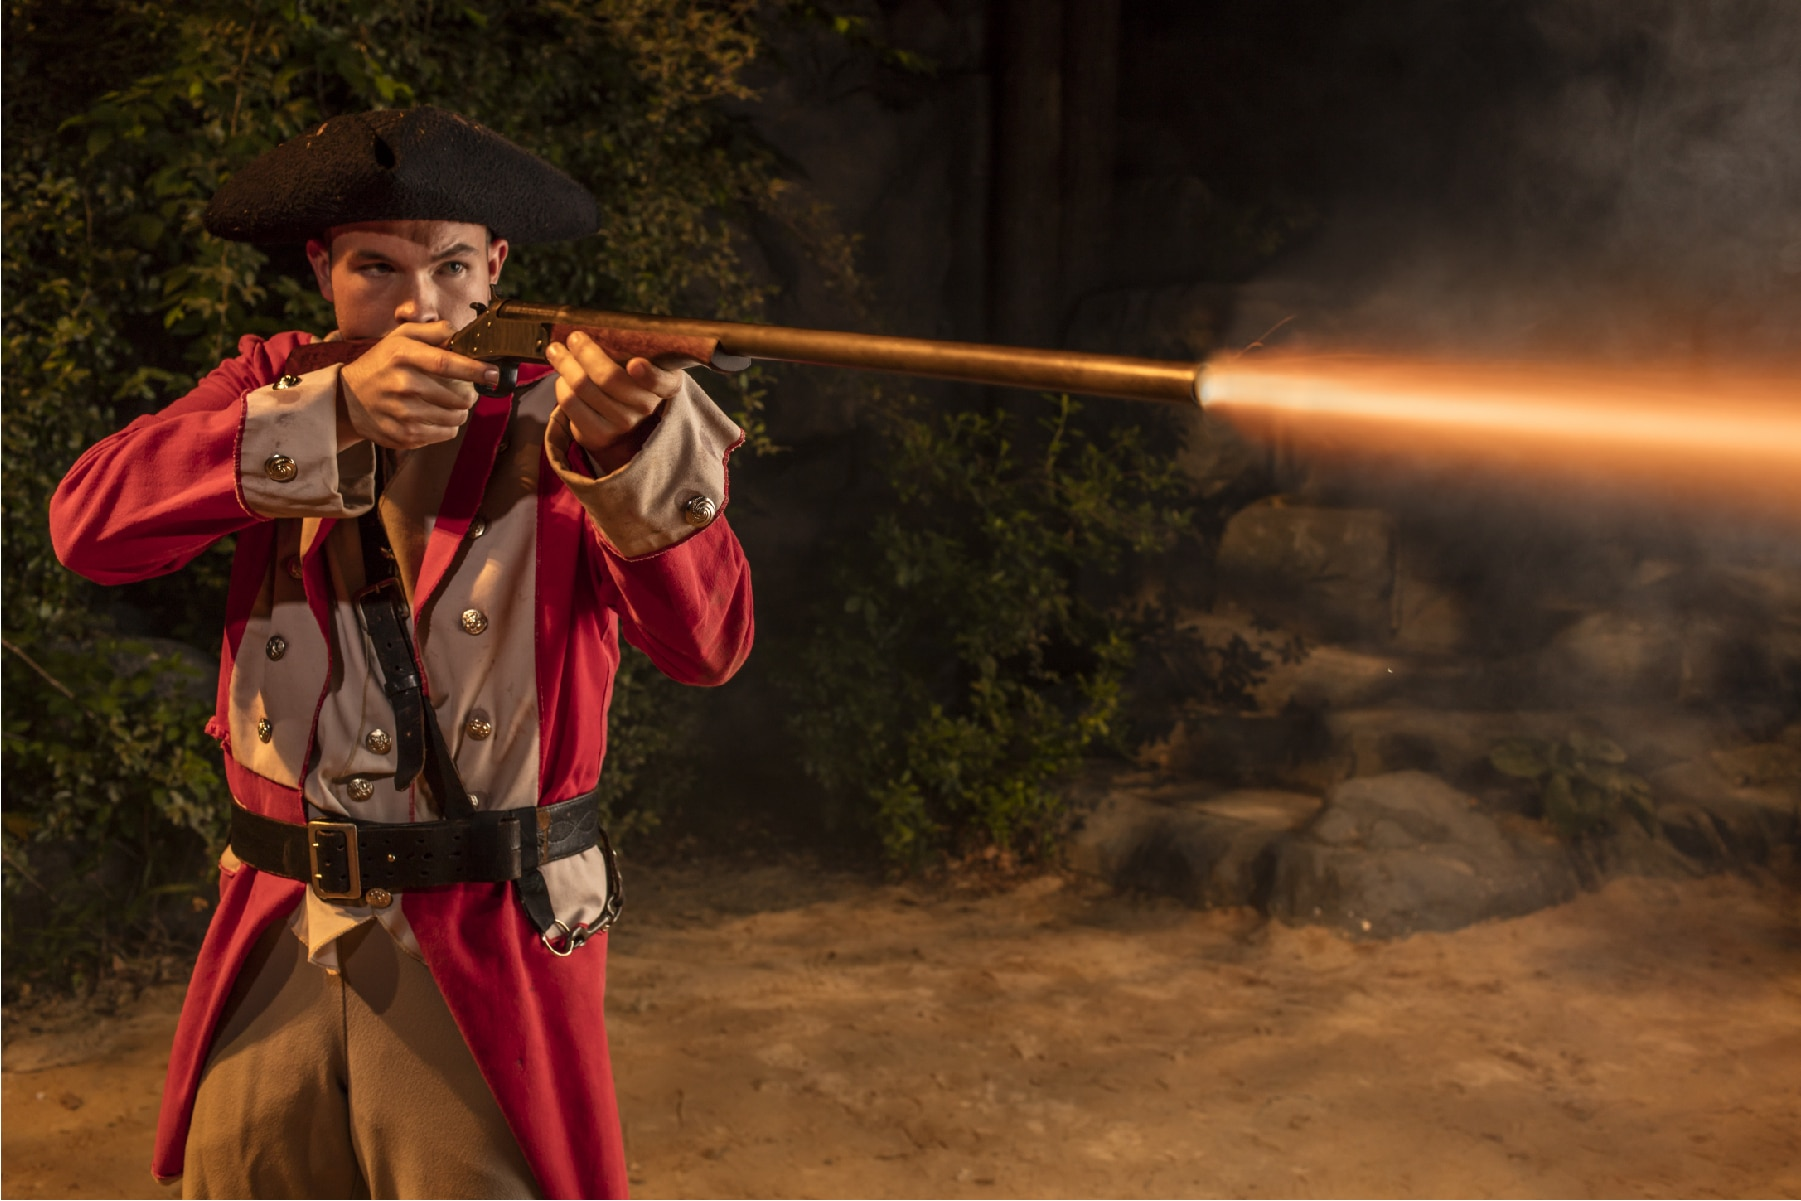 British Soldier Firing a musket in Unto These Hills, Outdoor Drama